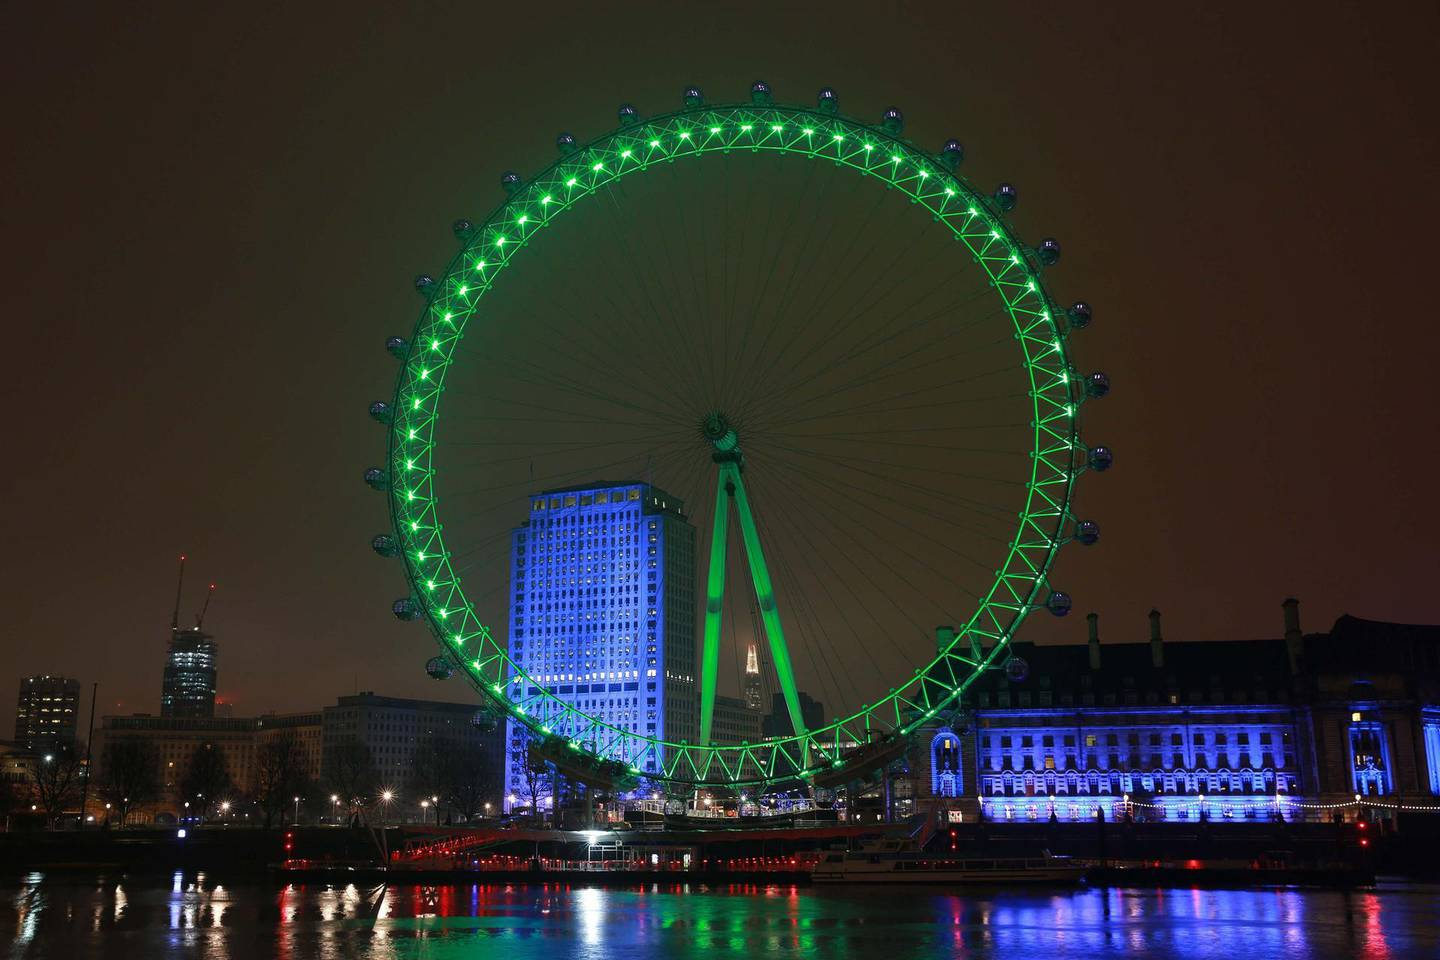 REPRO FREE16/03/2015, London – Tourism Ireland's annual Global Greening initiative, to celebrate the island of Ireland and St Patrick, has gone from strength to strength – from its beginning in 2010, with just the Sydney Opera House going green, to this year, when more than 150 landmark buildings and iconic sites across the world will turn a shade of green for our national day. PIC SHOWS: The iconic London Eye, illuminated in green as part of Tourism Ireland's Global Greening initiative, to celebrate the island of Ireland and St Patrick.Pic – Matt Alexander/PA Wire (no repro fee)Further press info – Sinéad Grace, Tourism Ireland 087 685 9027